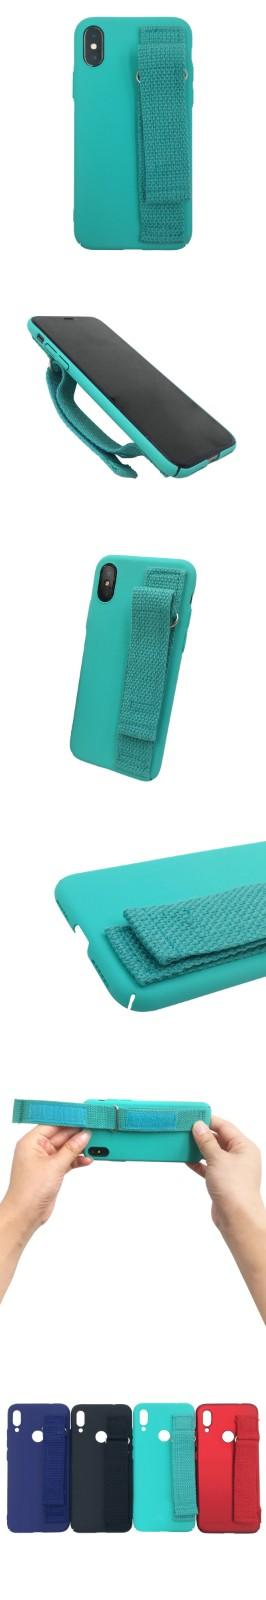 mobile phone cases wholesale for shop TenChen Tech